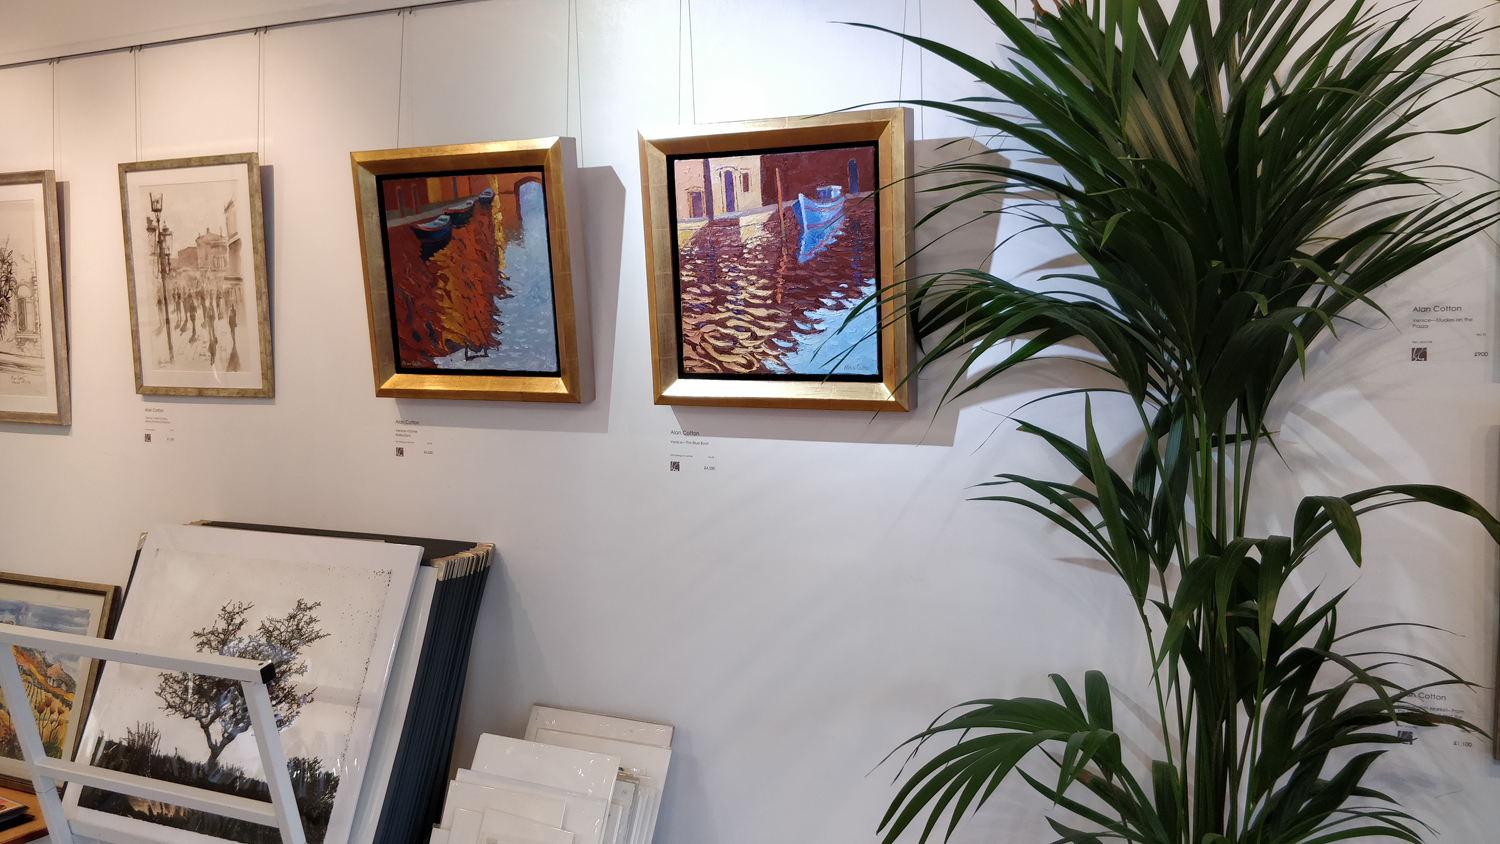 Alan Cotton Exhibition picture 2019 3.jpg